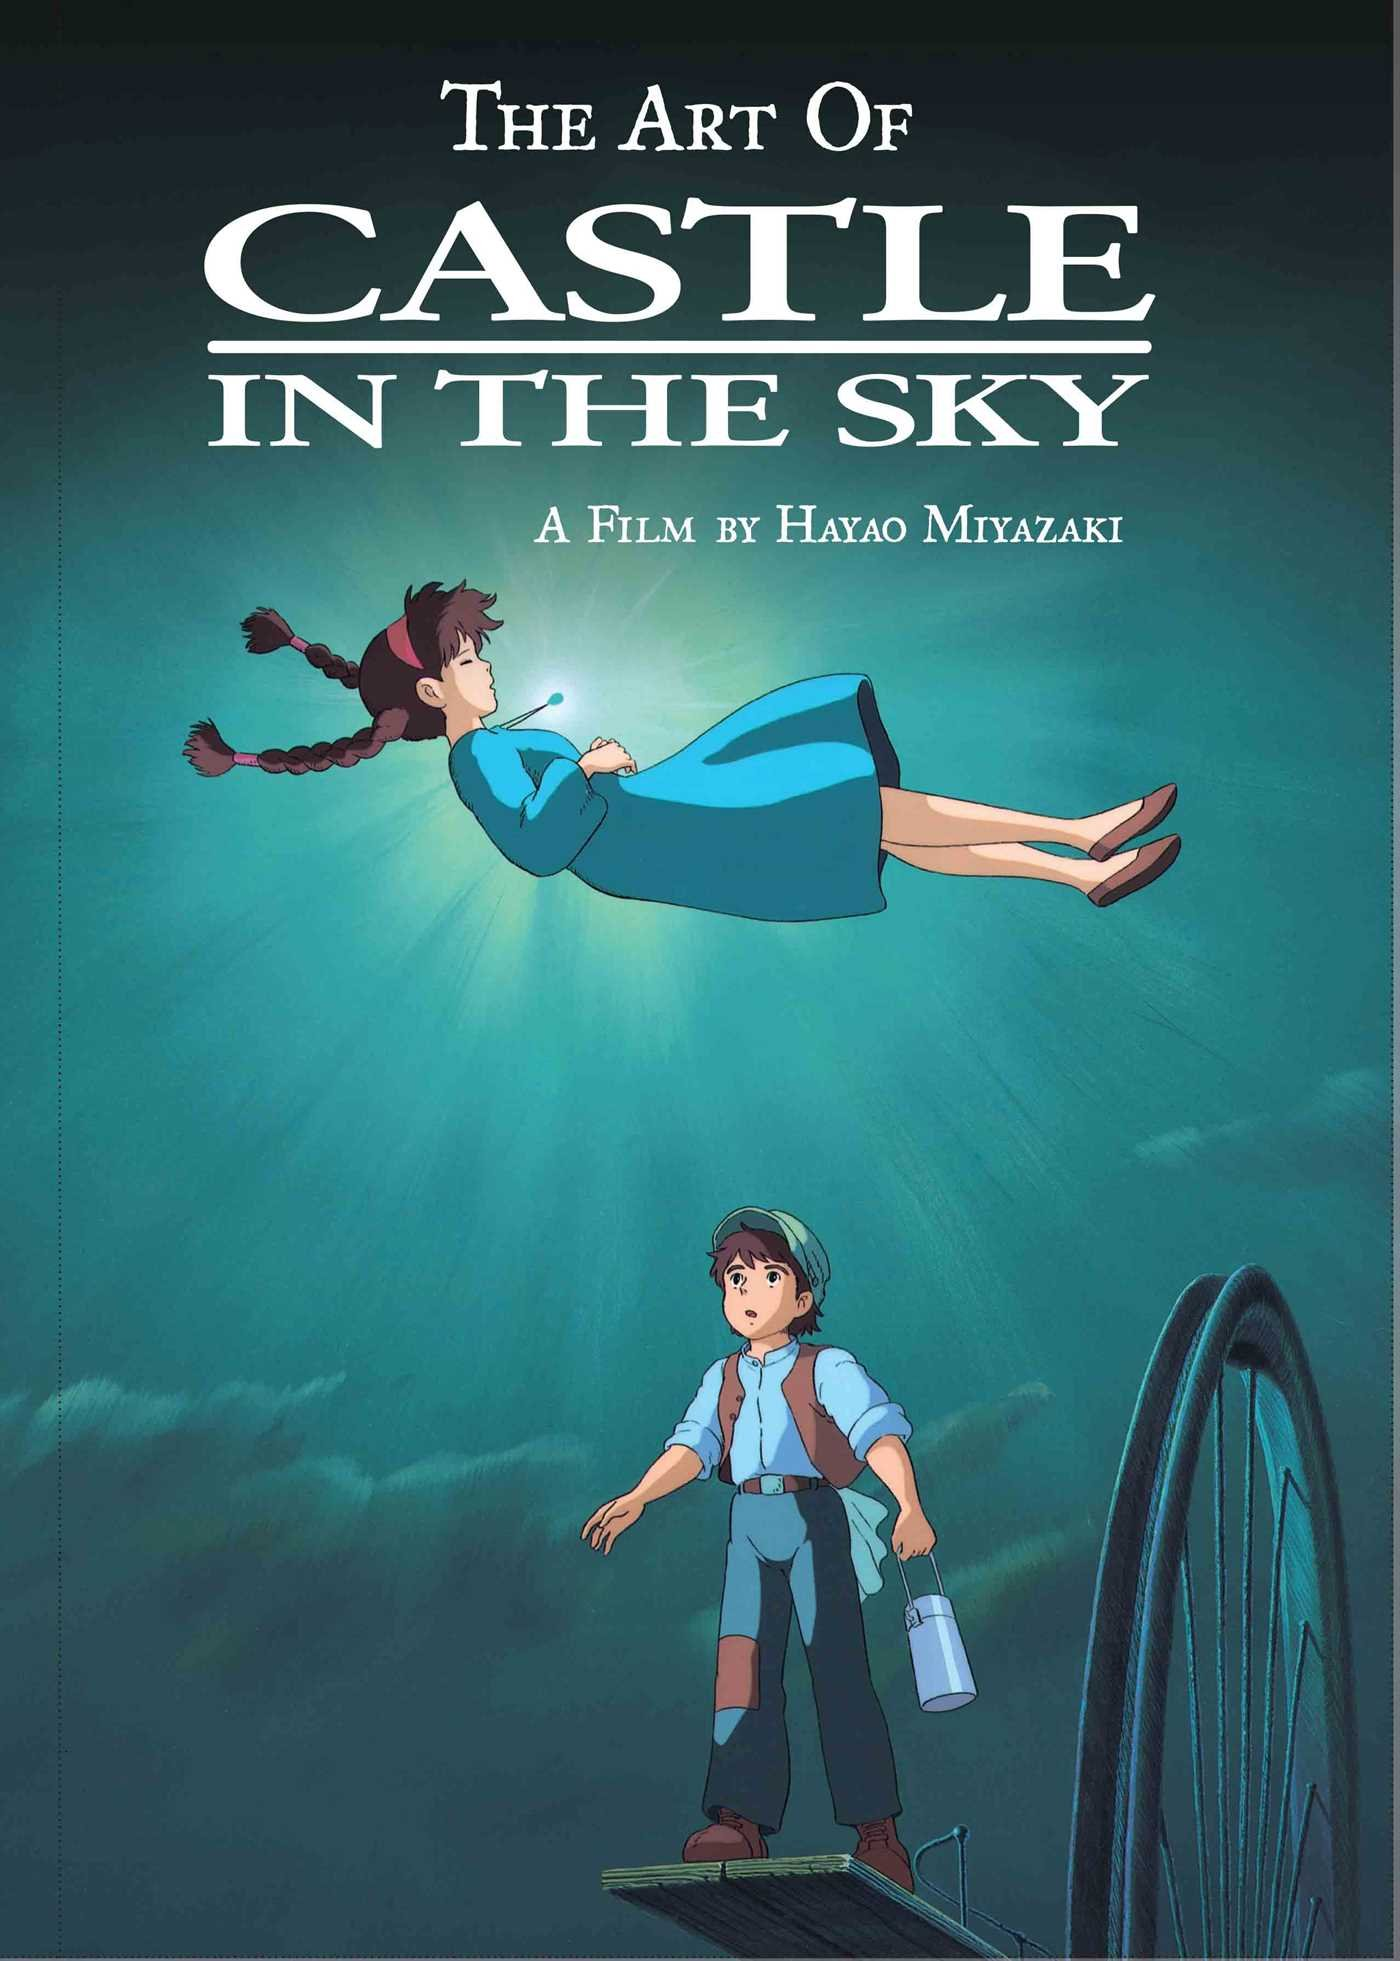 Showtime for Castle in the Sky playing Aug 14th, 2018 at 9:05 PM ...